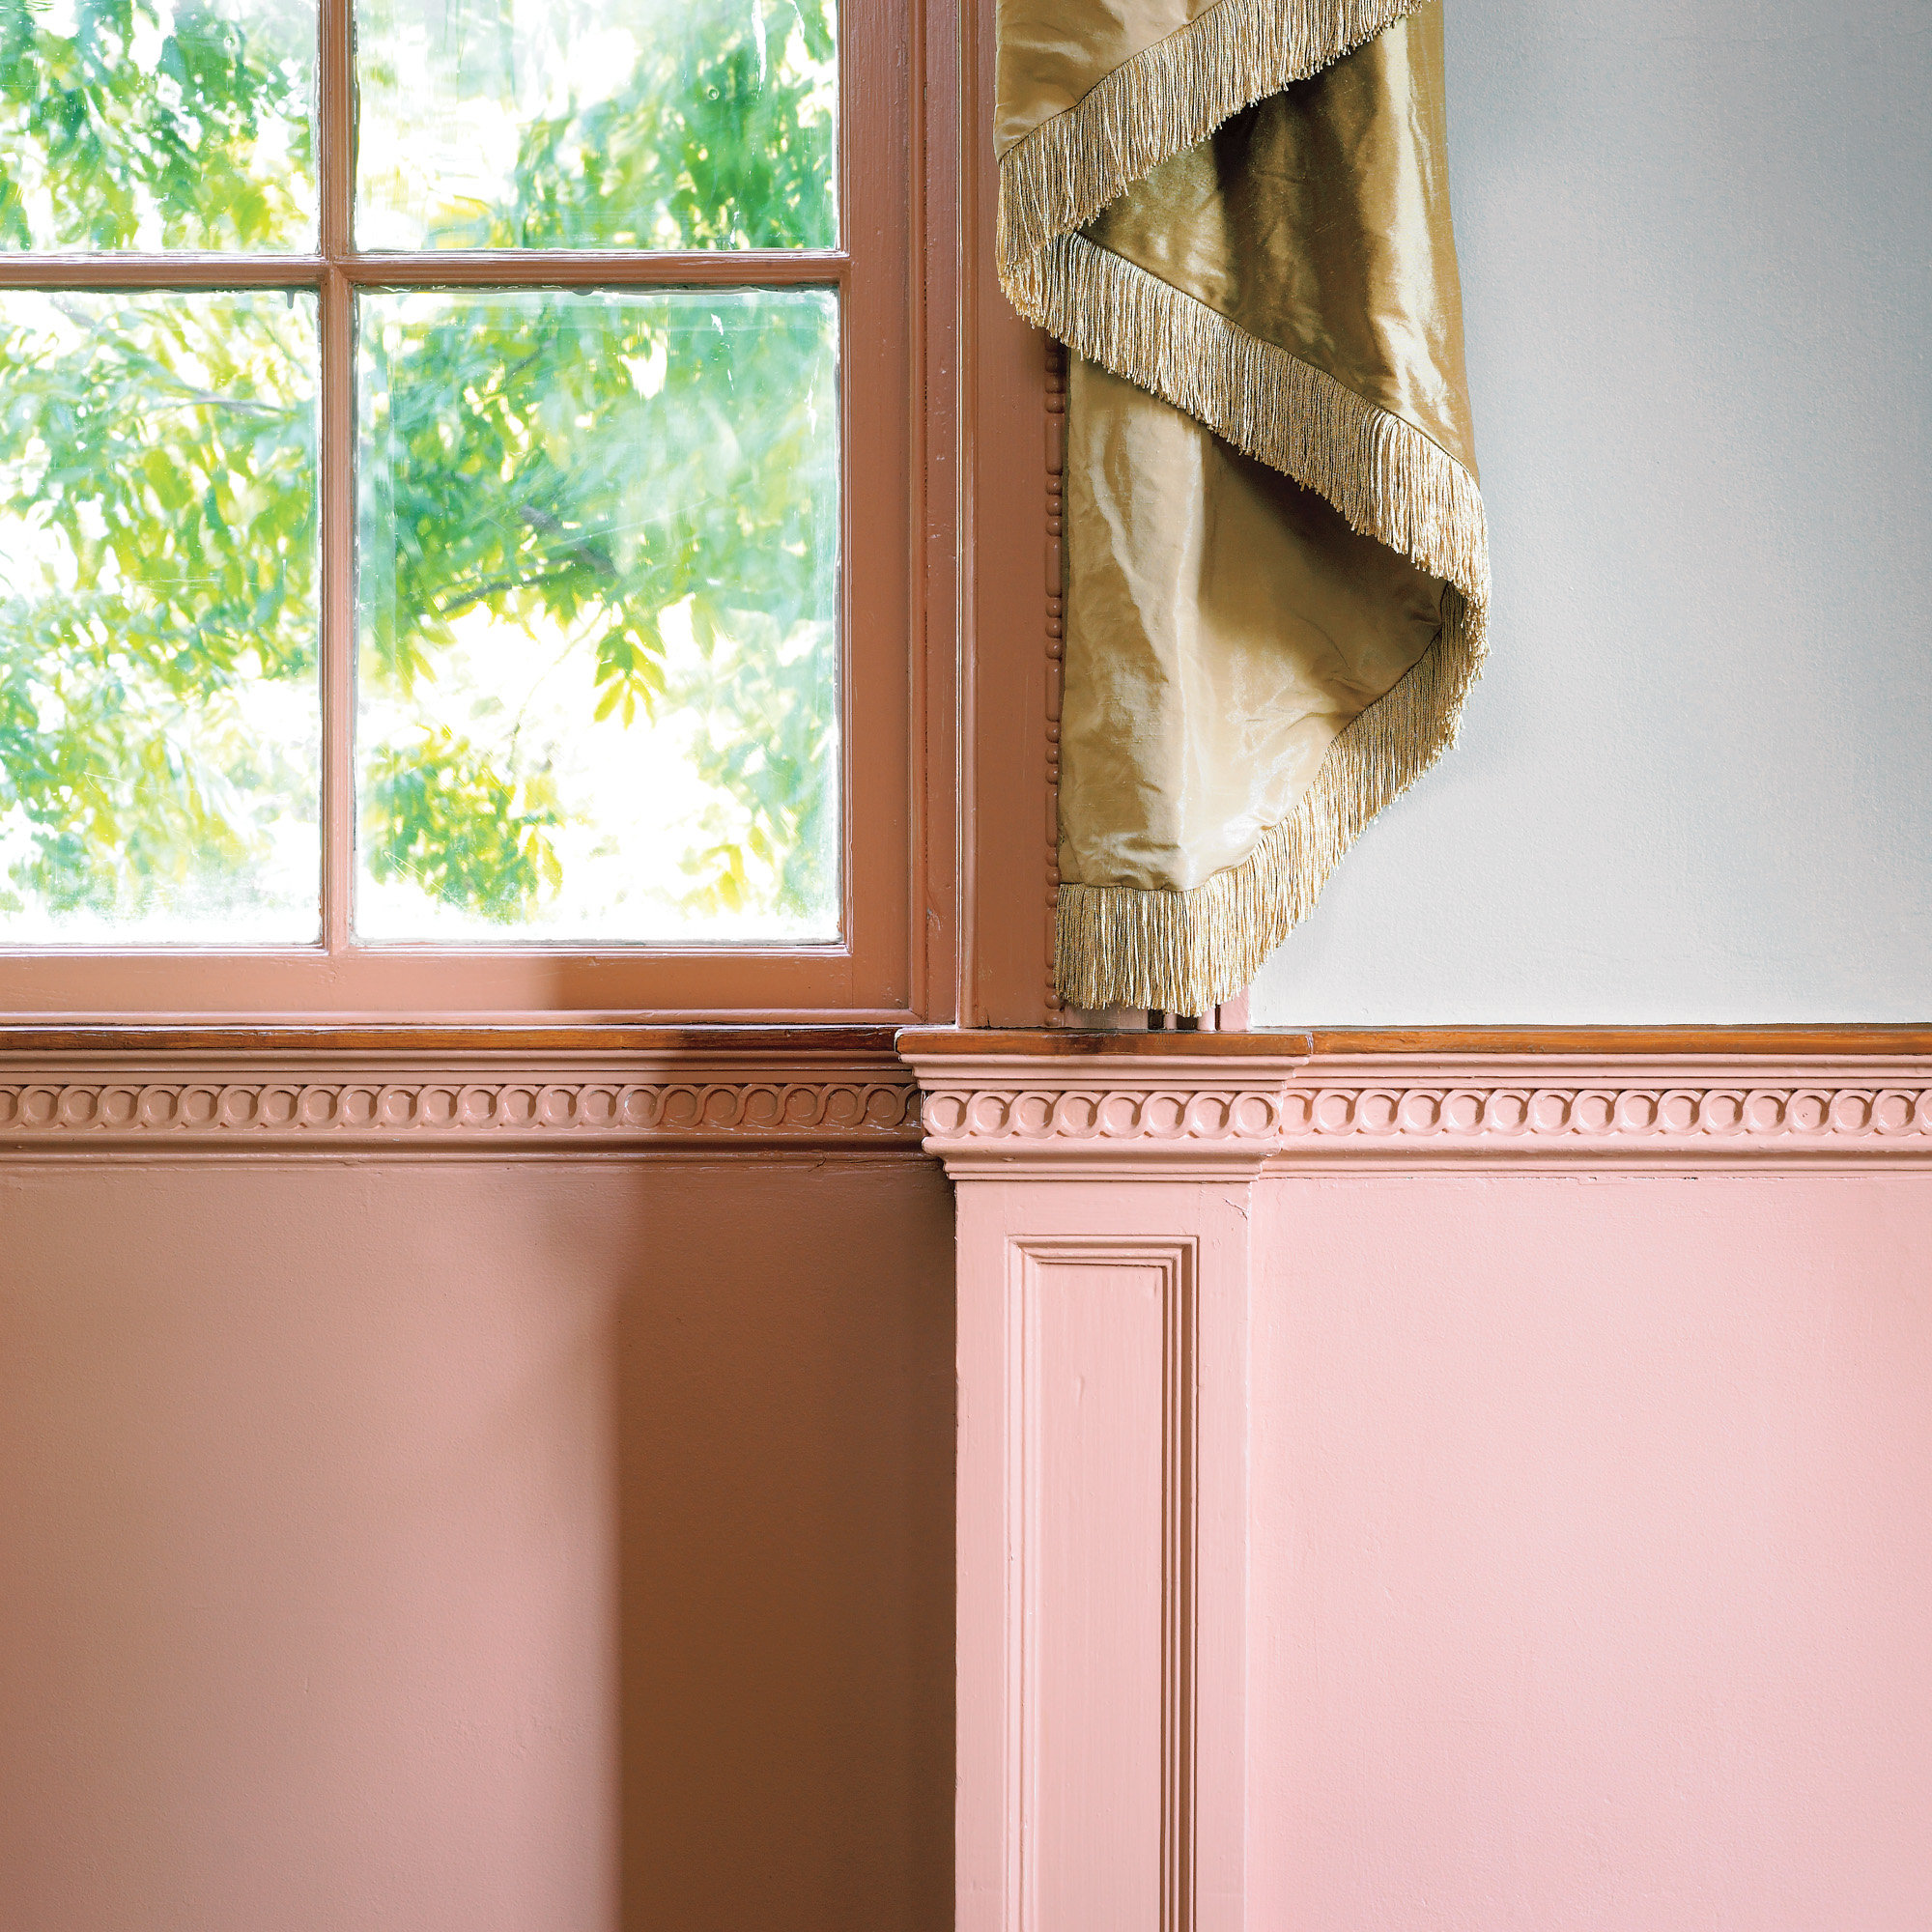 Pale pinks were possible in the early 18th century thanks to the wide availability of pigments of a reddish cast, which acquired delicacy when mixed with white.